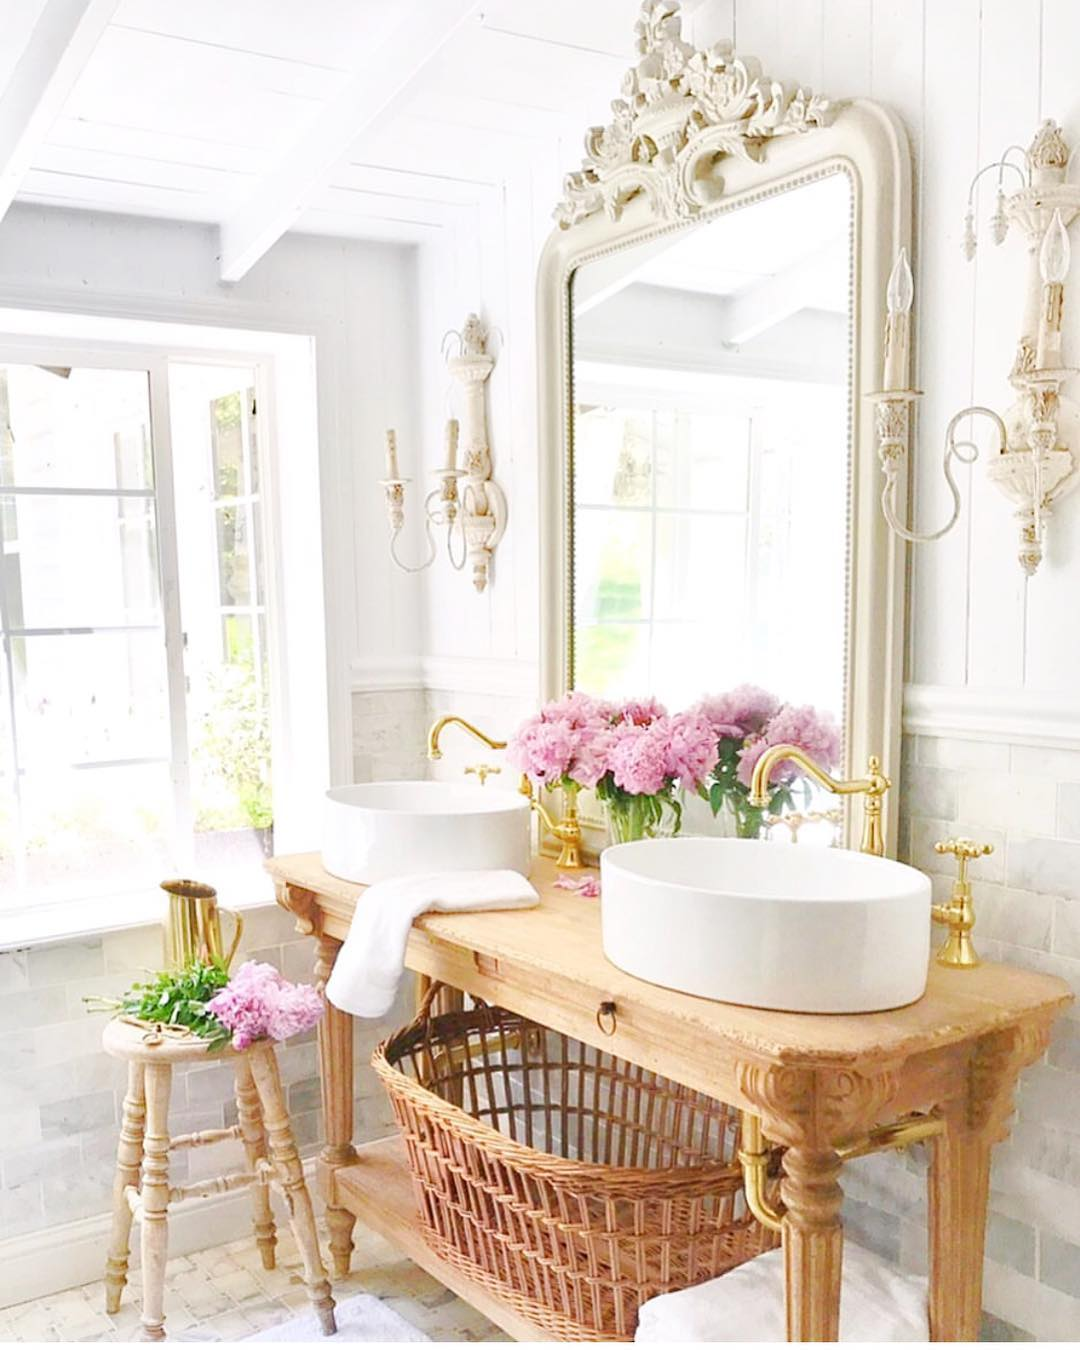 French country bathroom @frenchcountrycottage